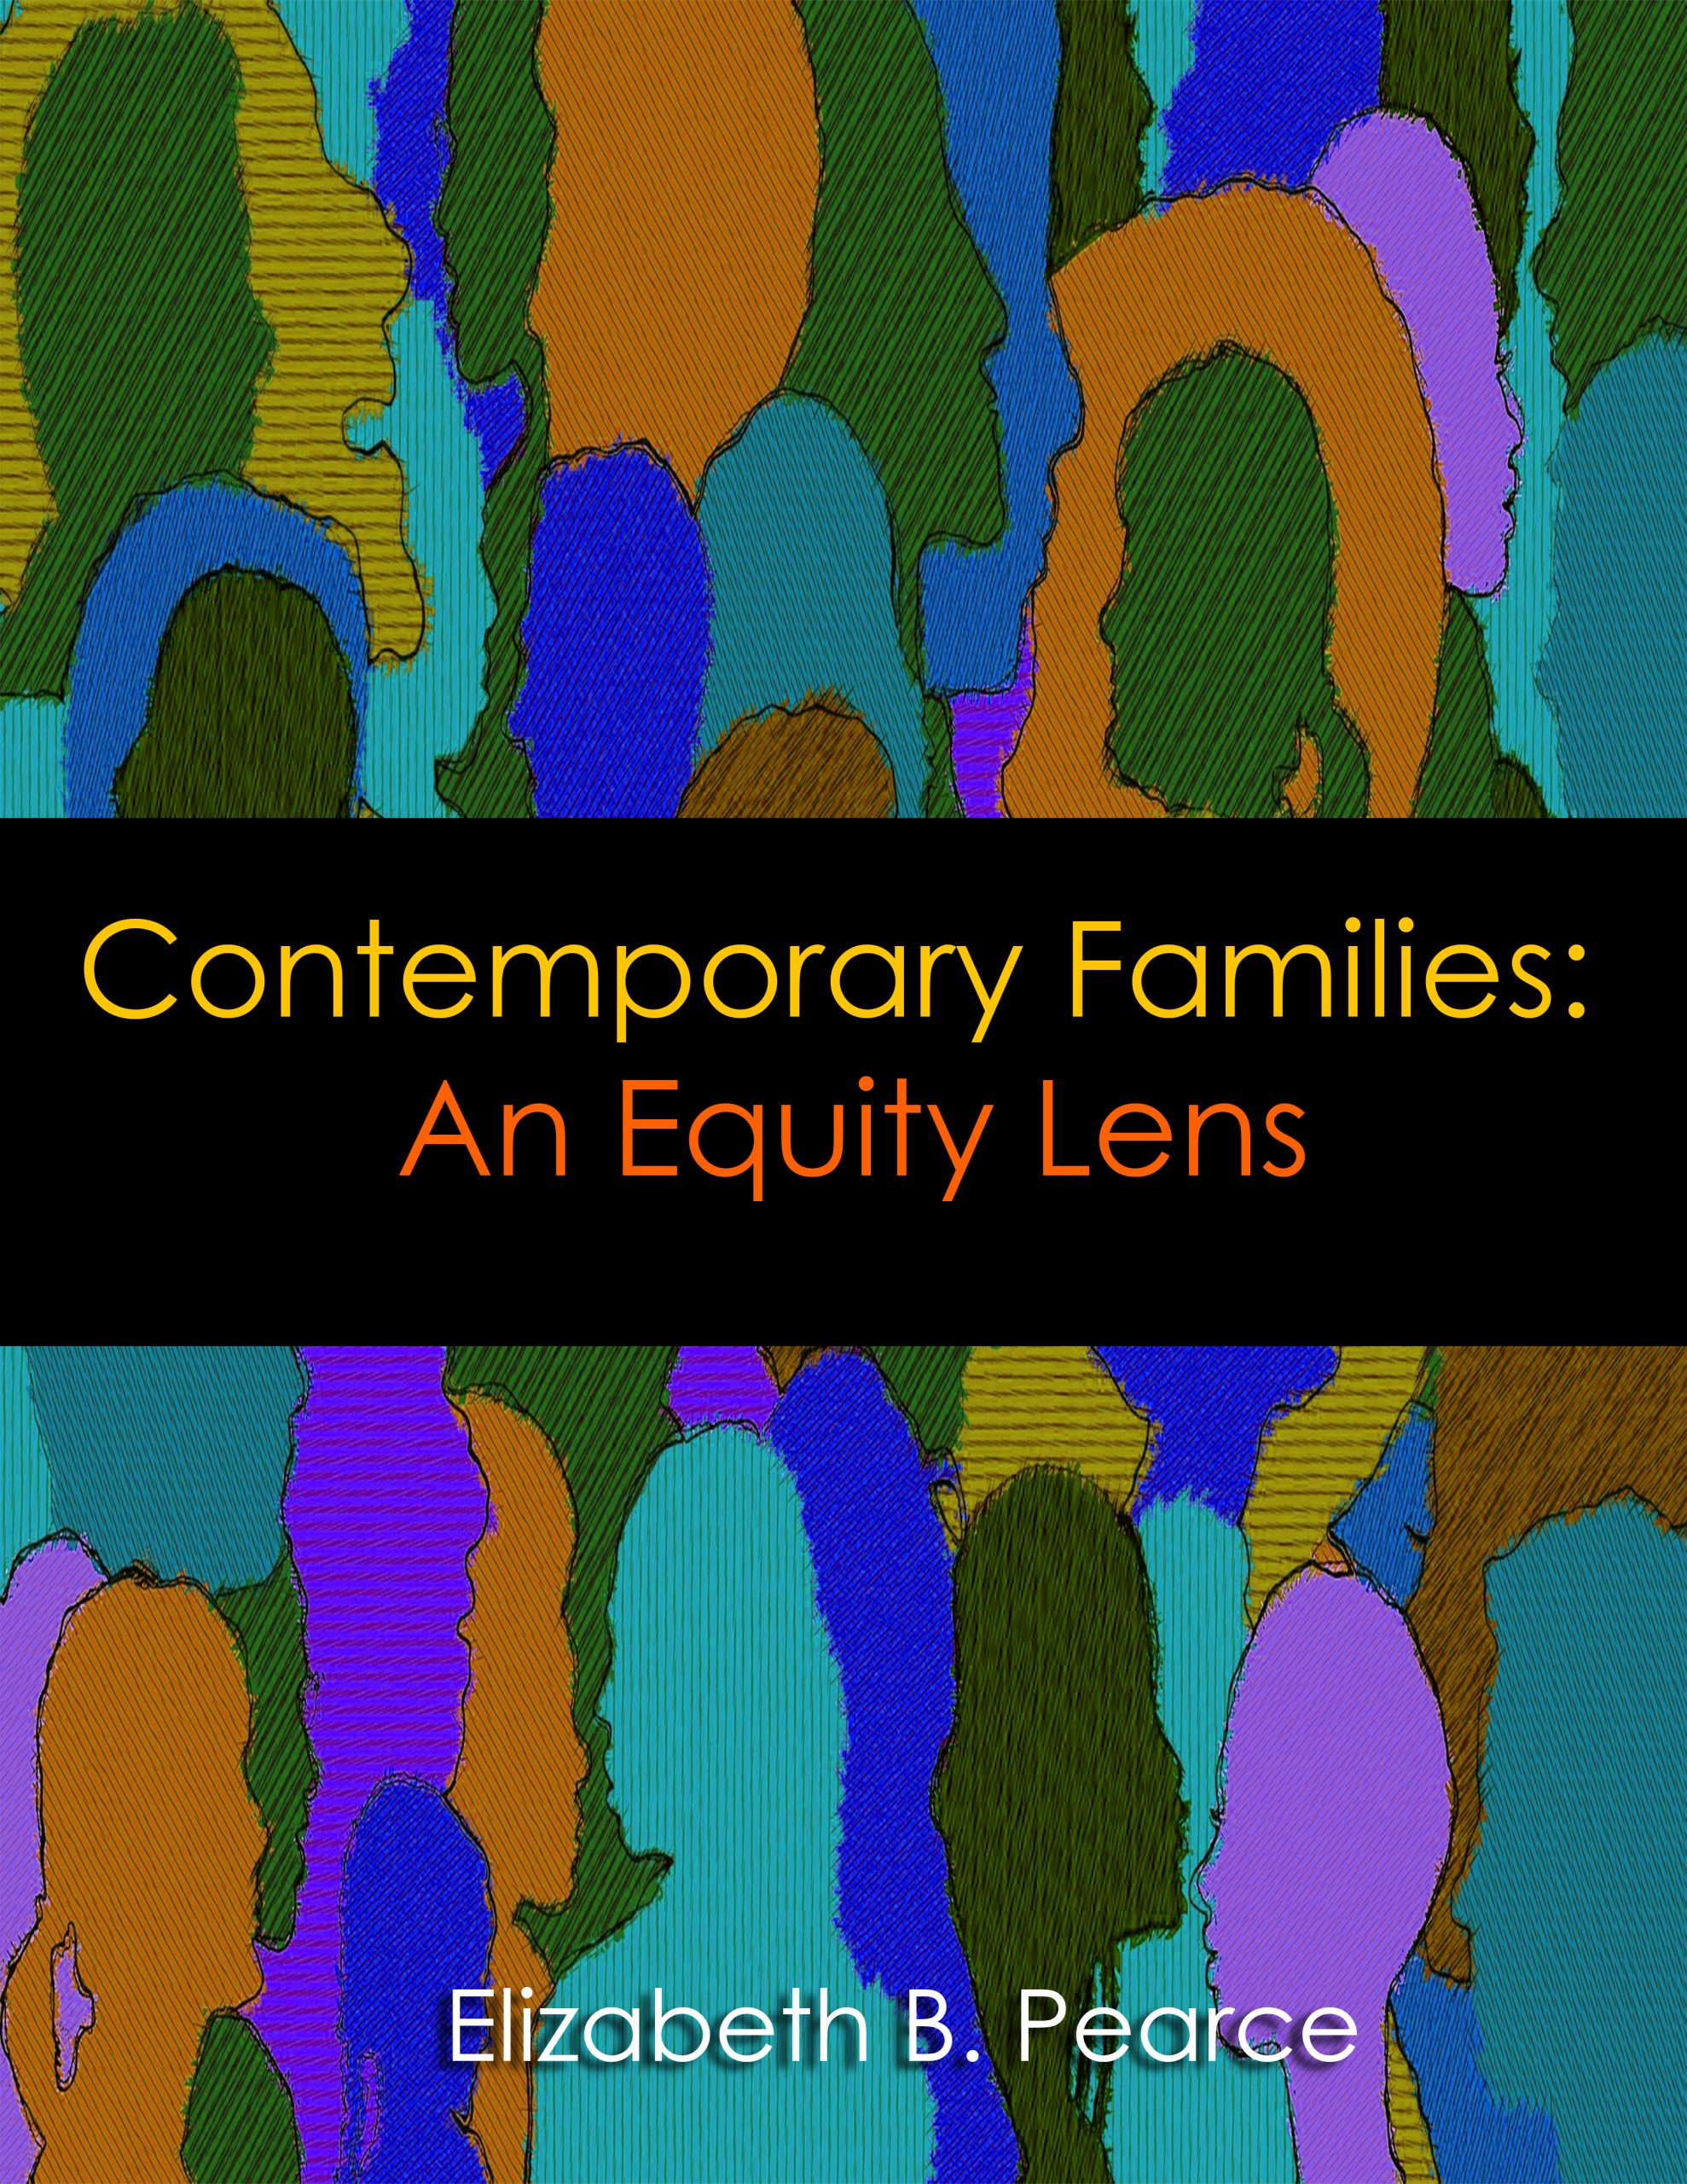 Contemporary Families: An Equity Lens